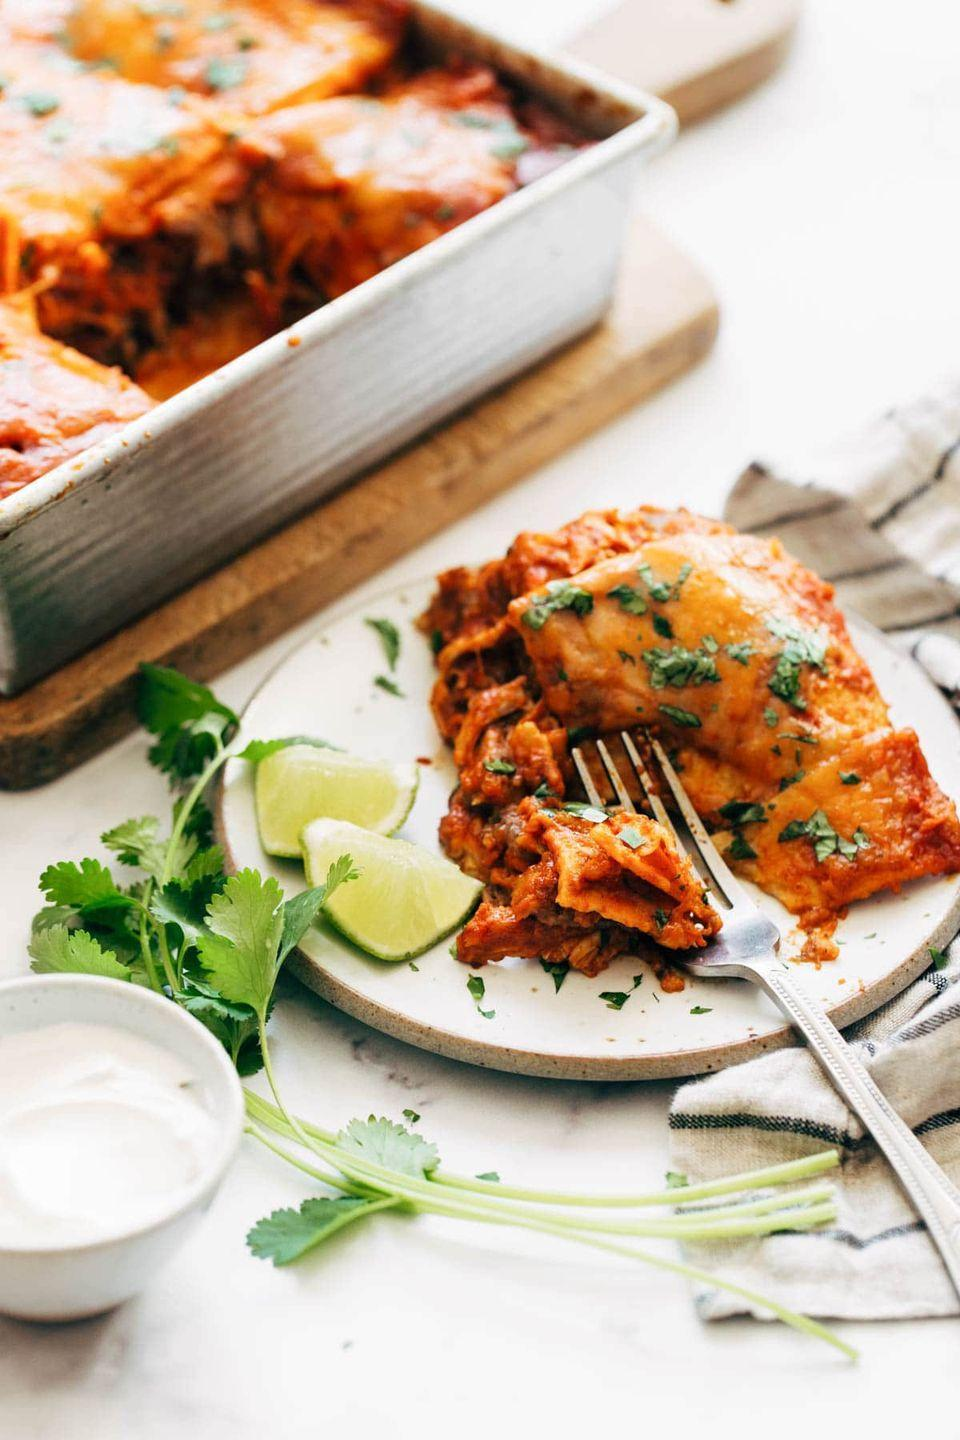 """<p>You can make your own enchilada sauce right in your blender to create an extra-indulgent, yet easy, dish.</p><p><strong>Get the recipe at <a href=""""https://pinchofyum.com/chicken-enchilada-casserole"""" rel=""""nofollow noopener"""" target=""""_blank"""" data-ylk=""""slk:Pinch of Yum"""" class=""""link rapid-noclick-resp"""">Pinch of Yum</a>.</strong> </p>"""